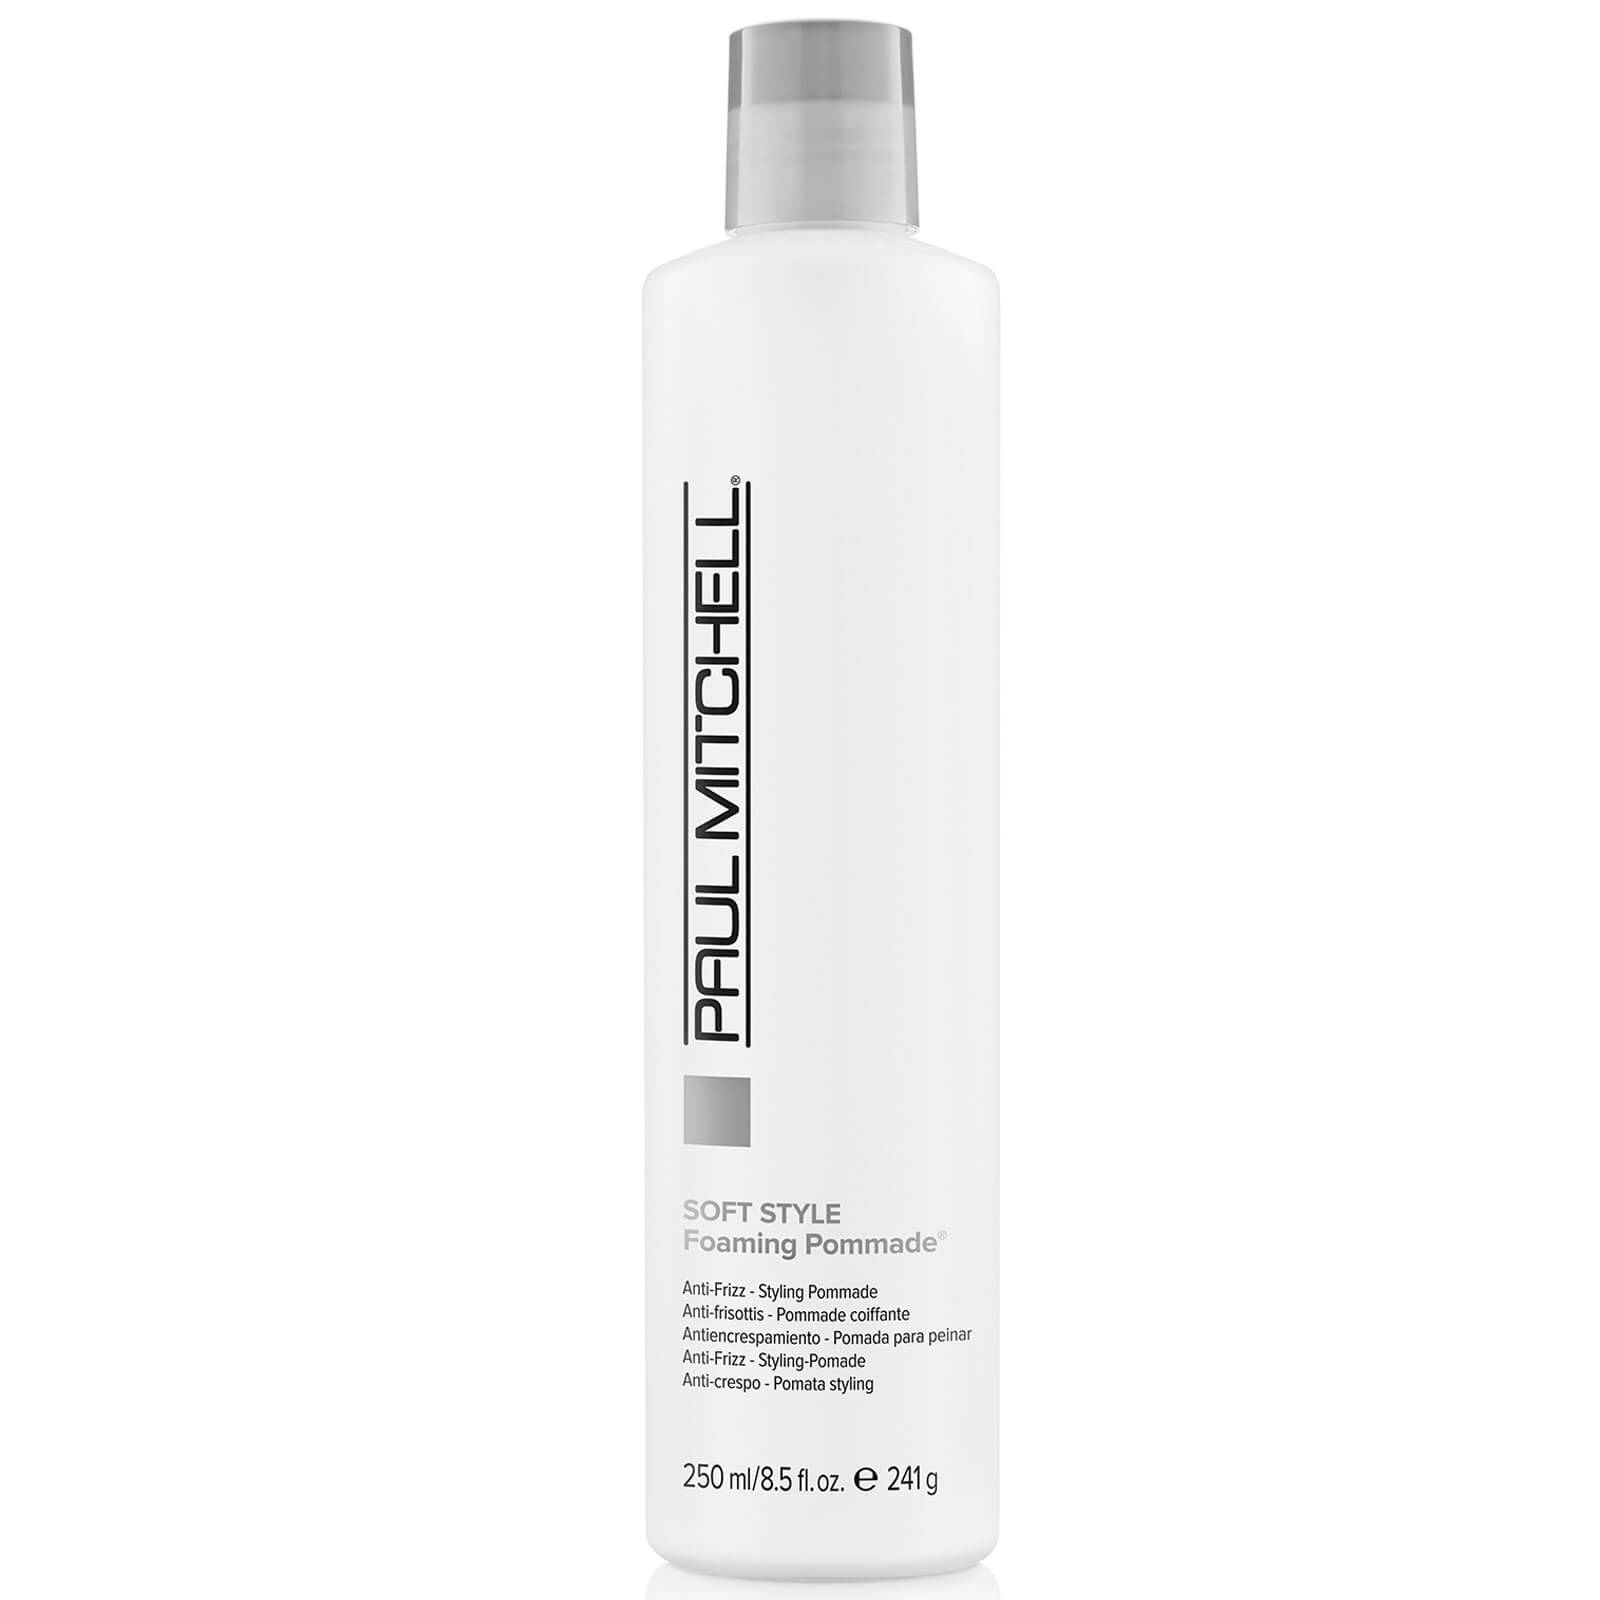 Paul Mitchell Cire texturisante PAUL MITCHELL FOAMING POMADE (250ml)